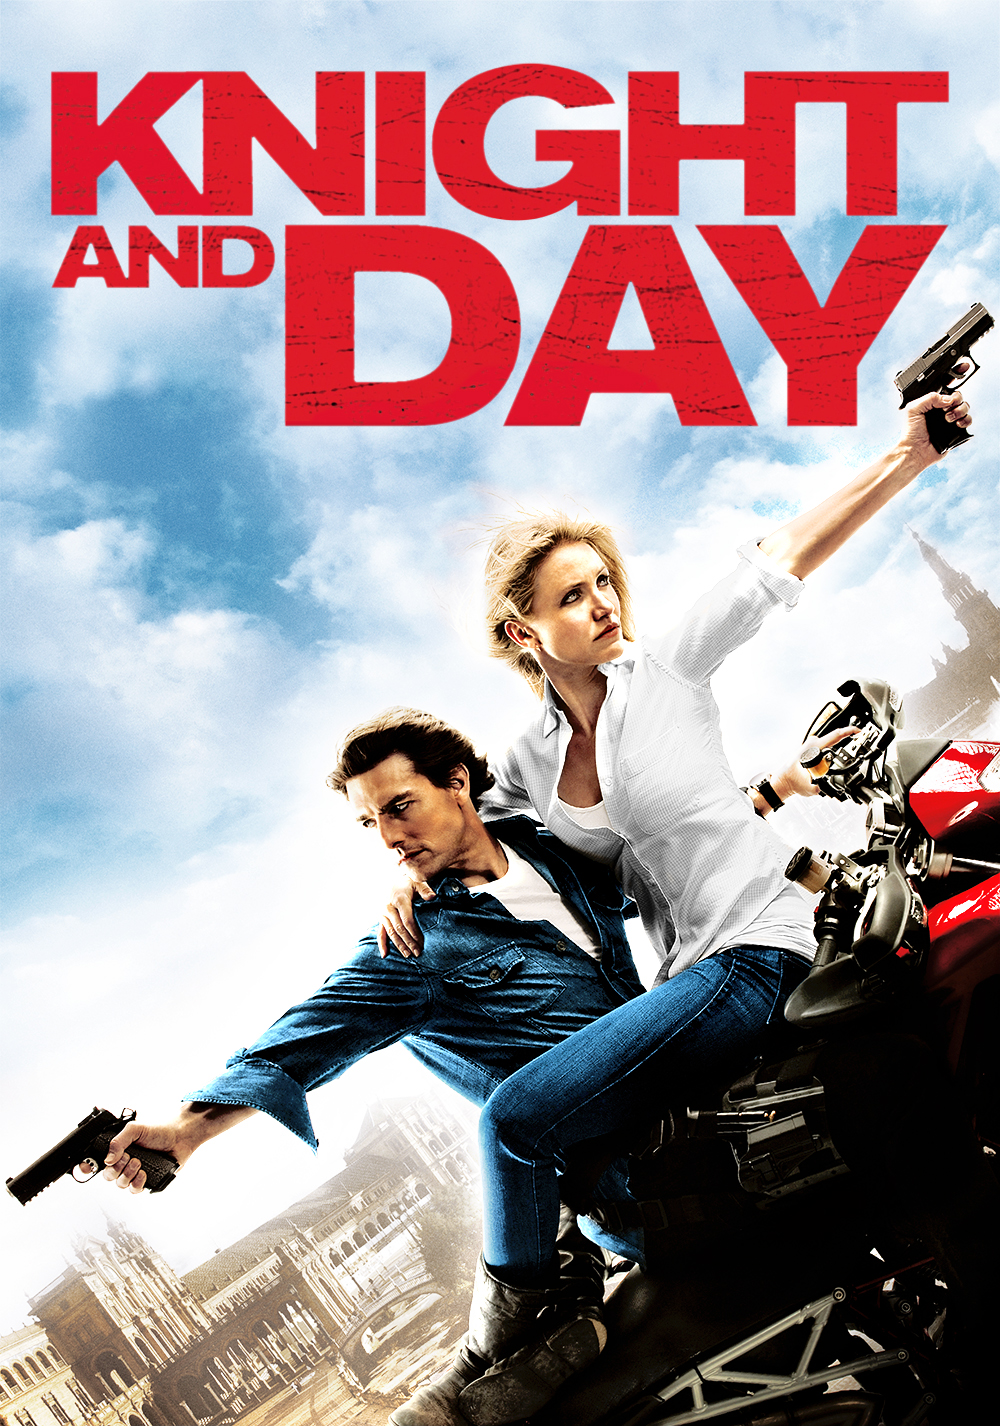 Knight and Day: Story (Video 2010) - IMDb